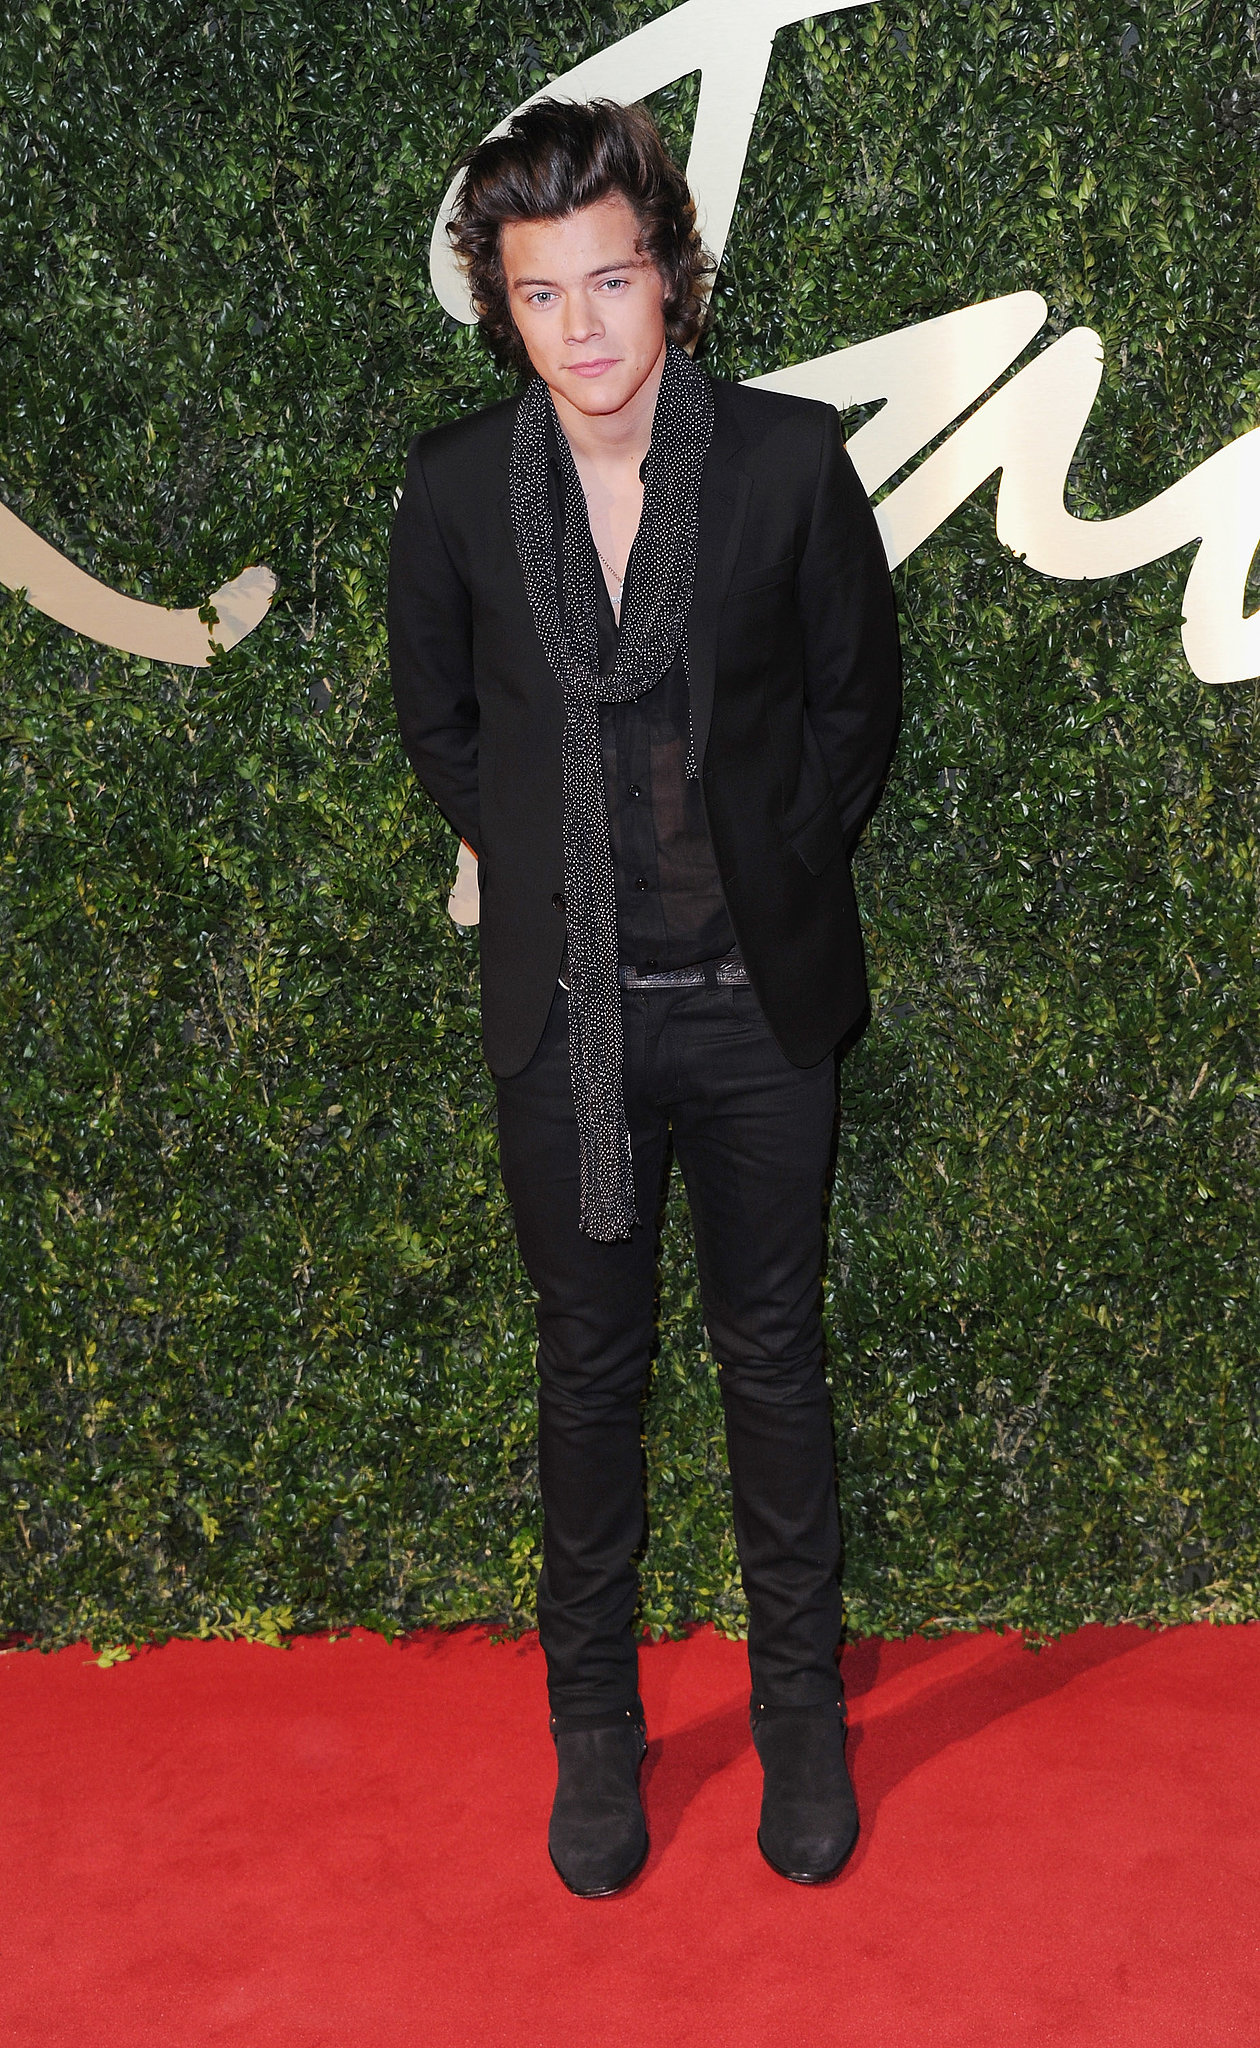 Harry Styles showed up to the awards without his fellow band members.